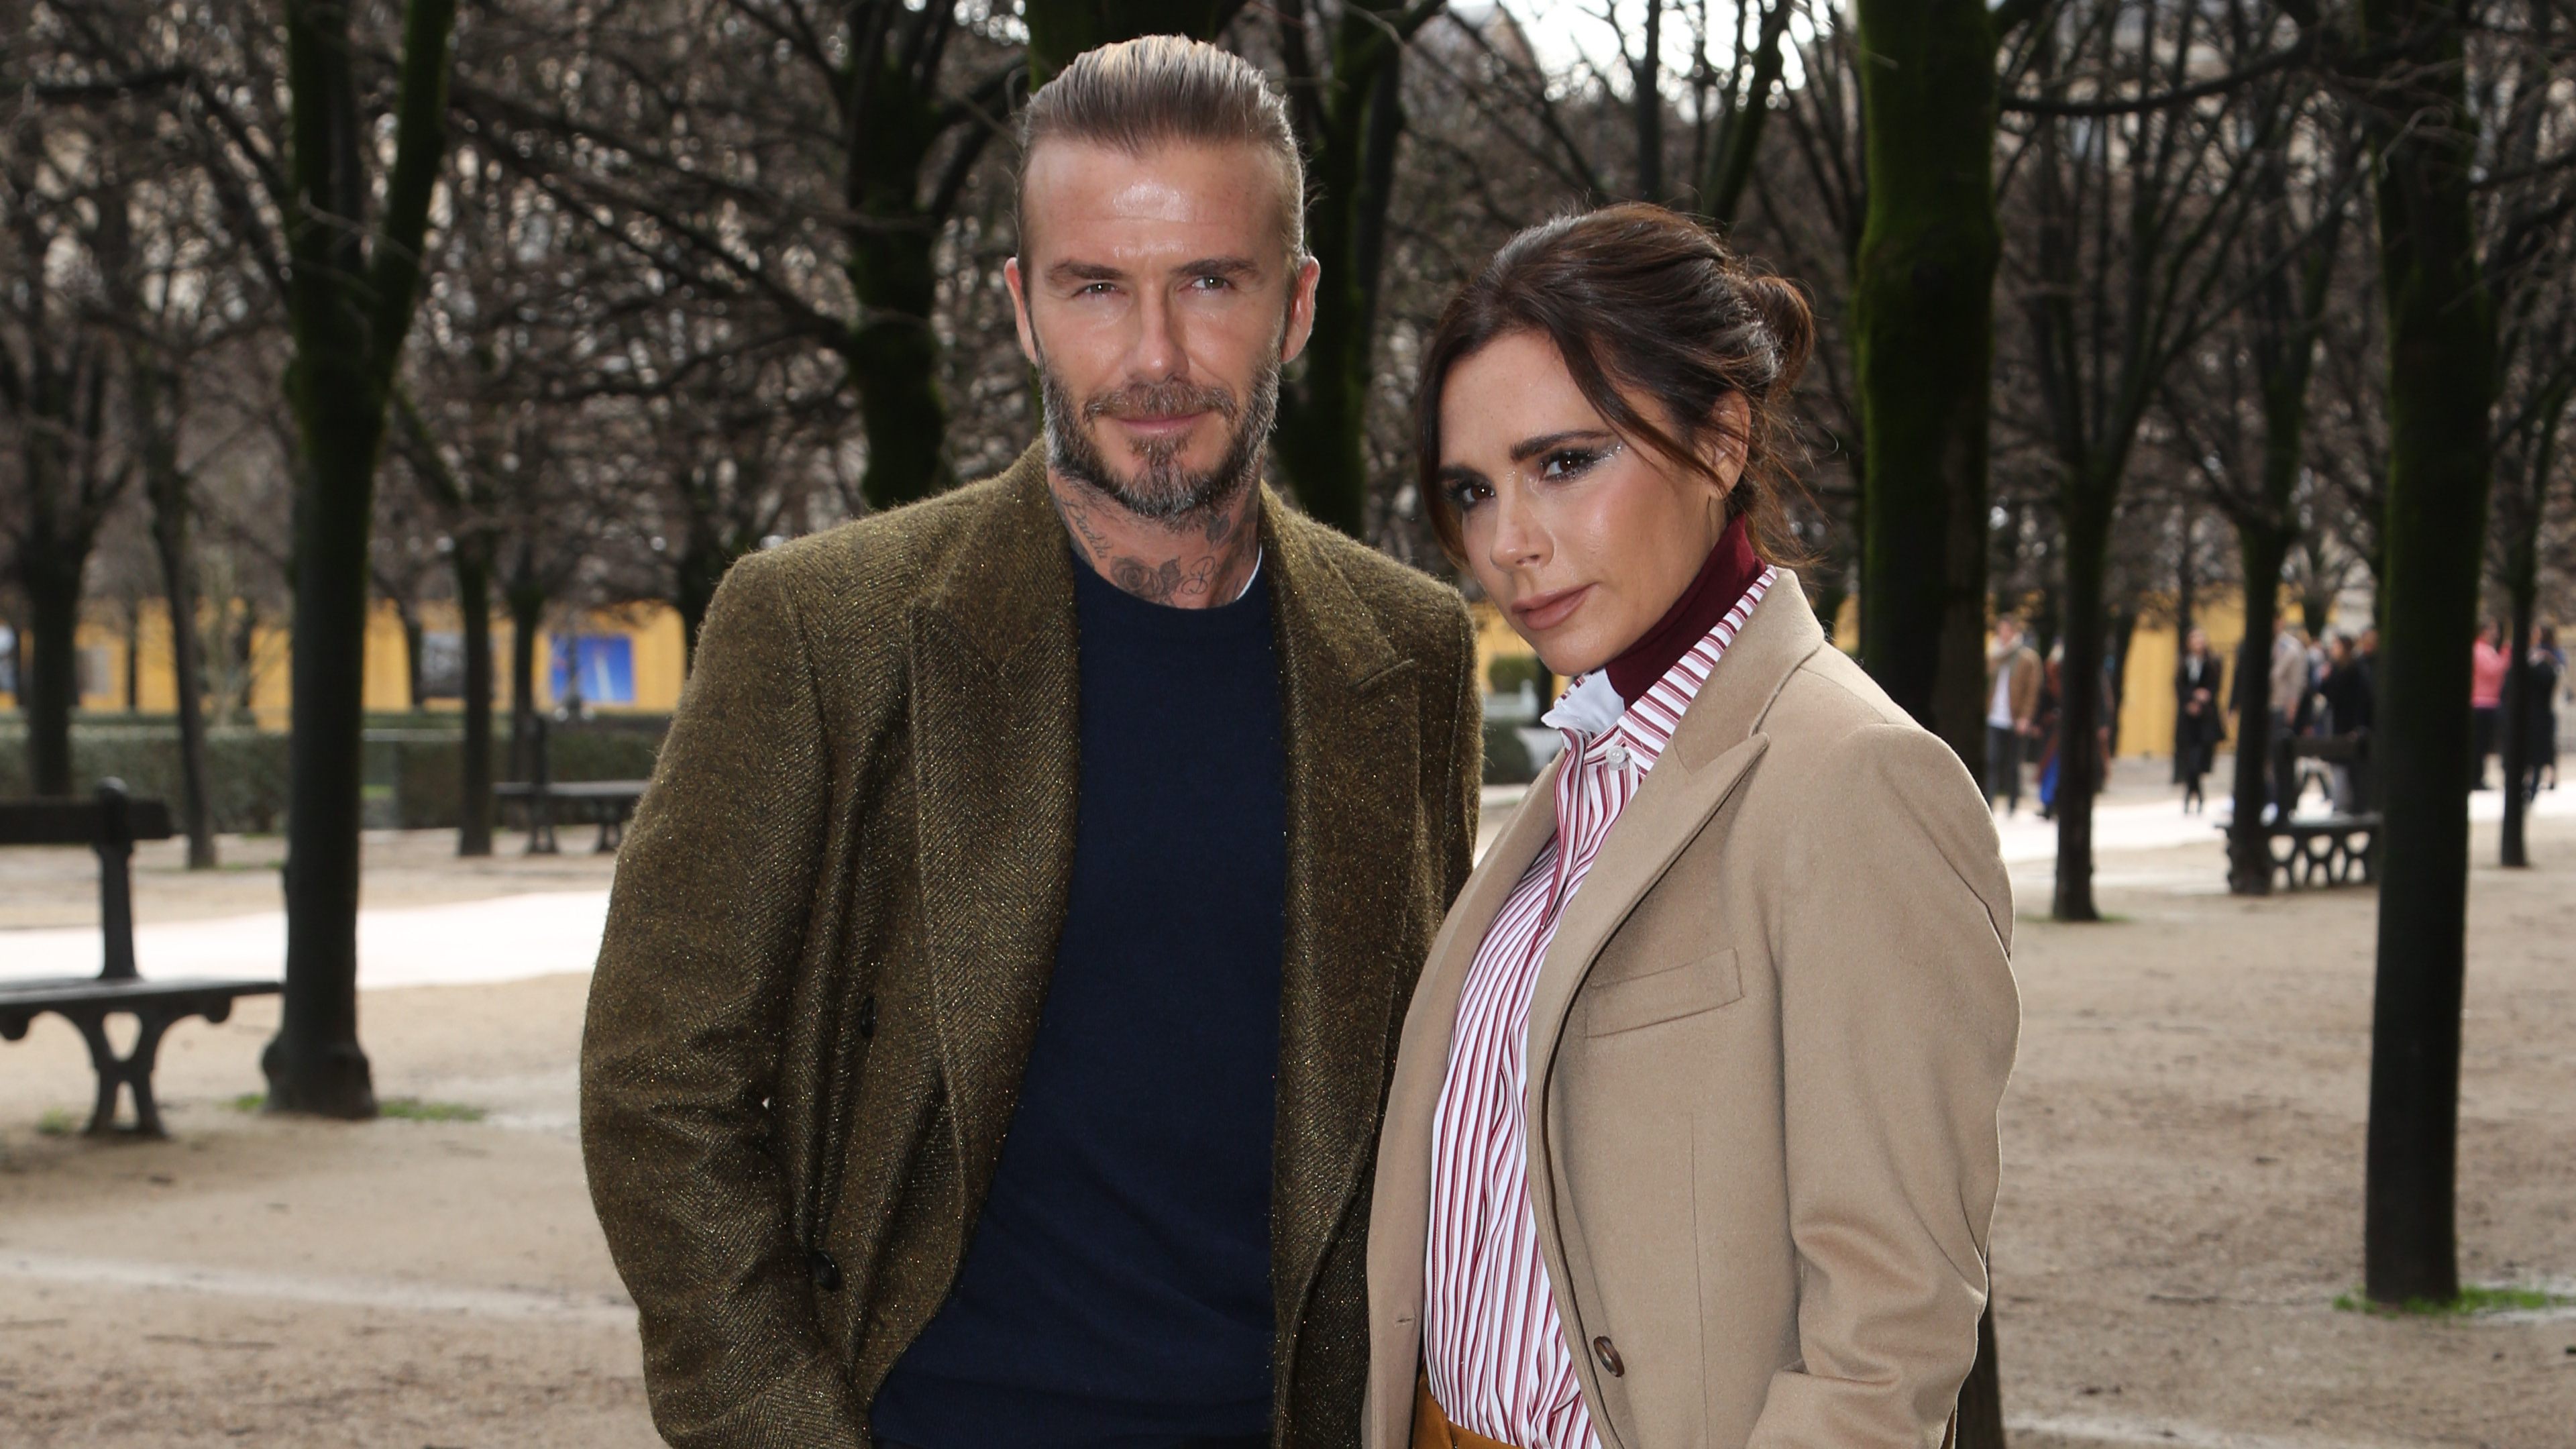 Victoria Beckham commented on rumors of her marriage, appearing for the cover of Vogue